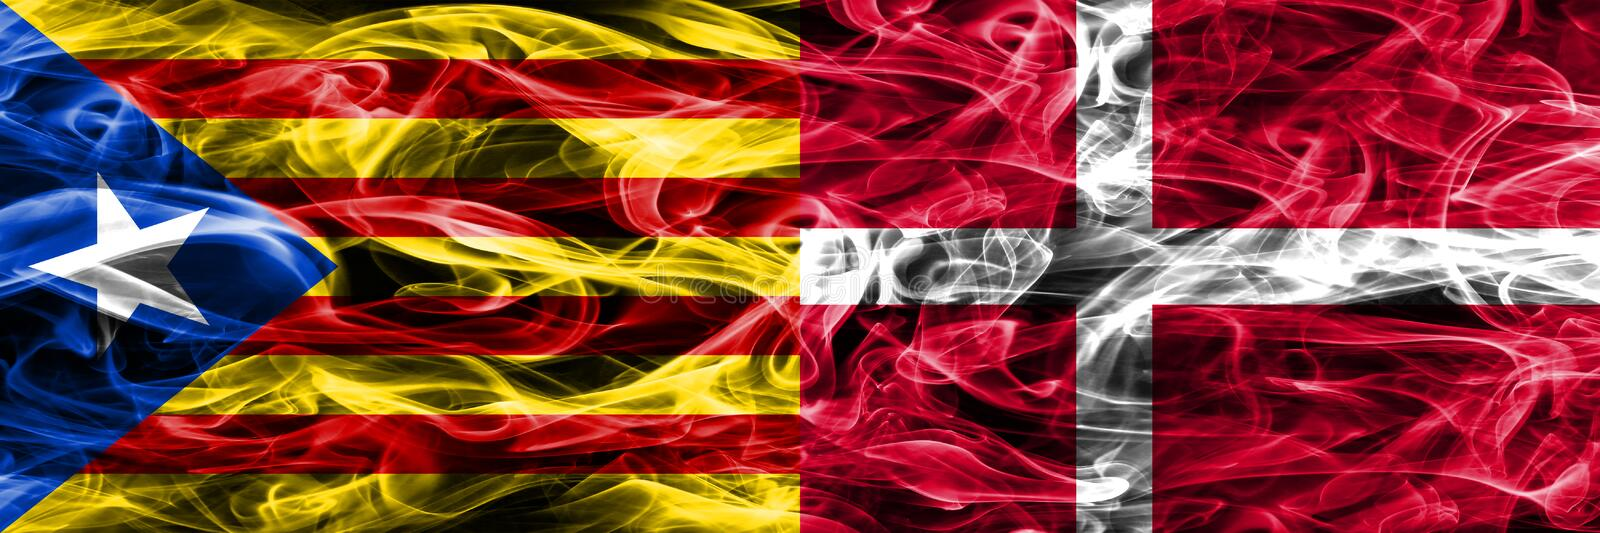 Catalonia vs Denmark copy smoke flags placed side by side. Thick colored silky smoke flags of Catalan and Denmark copy.  royalty free illustration